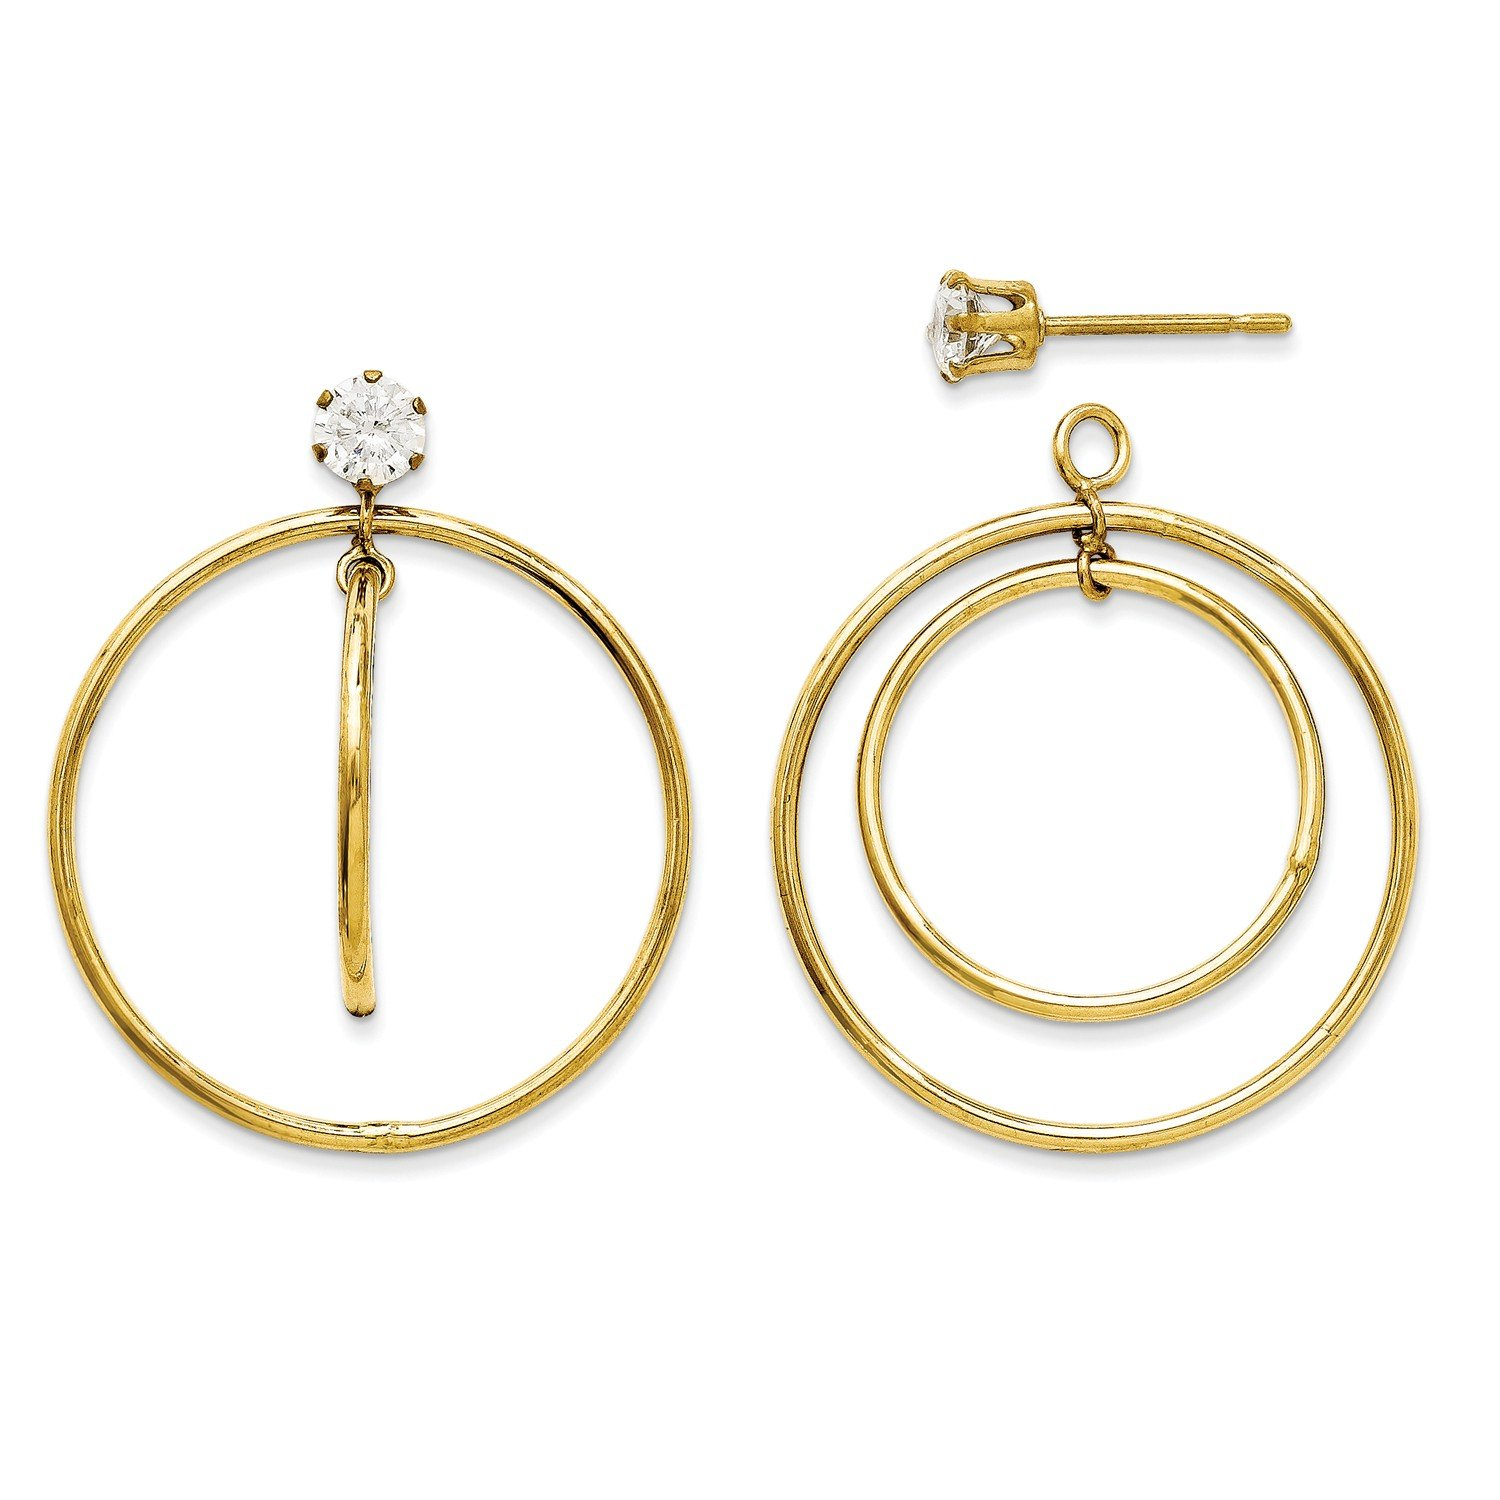 Roy Rose Jewelry 14K Yellow Gold Double Hoop with CZ Earring Jackets